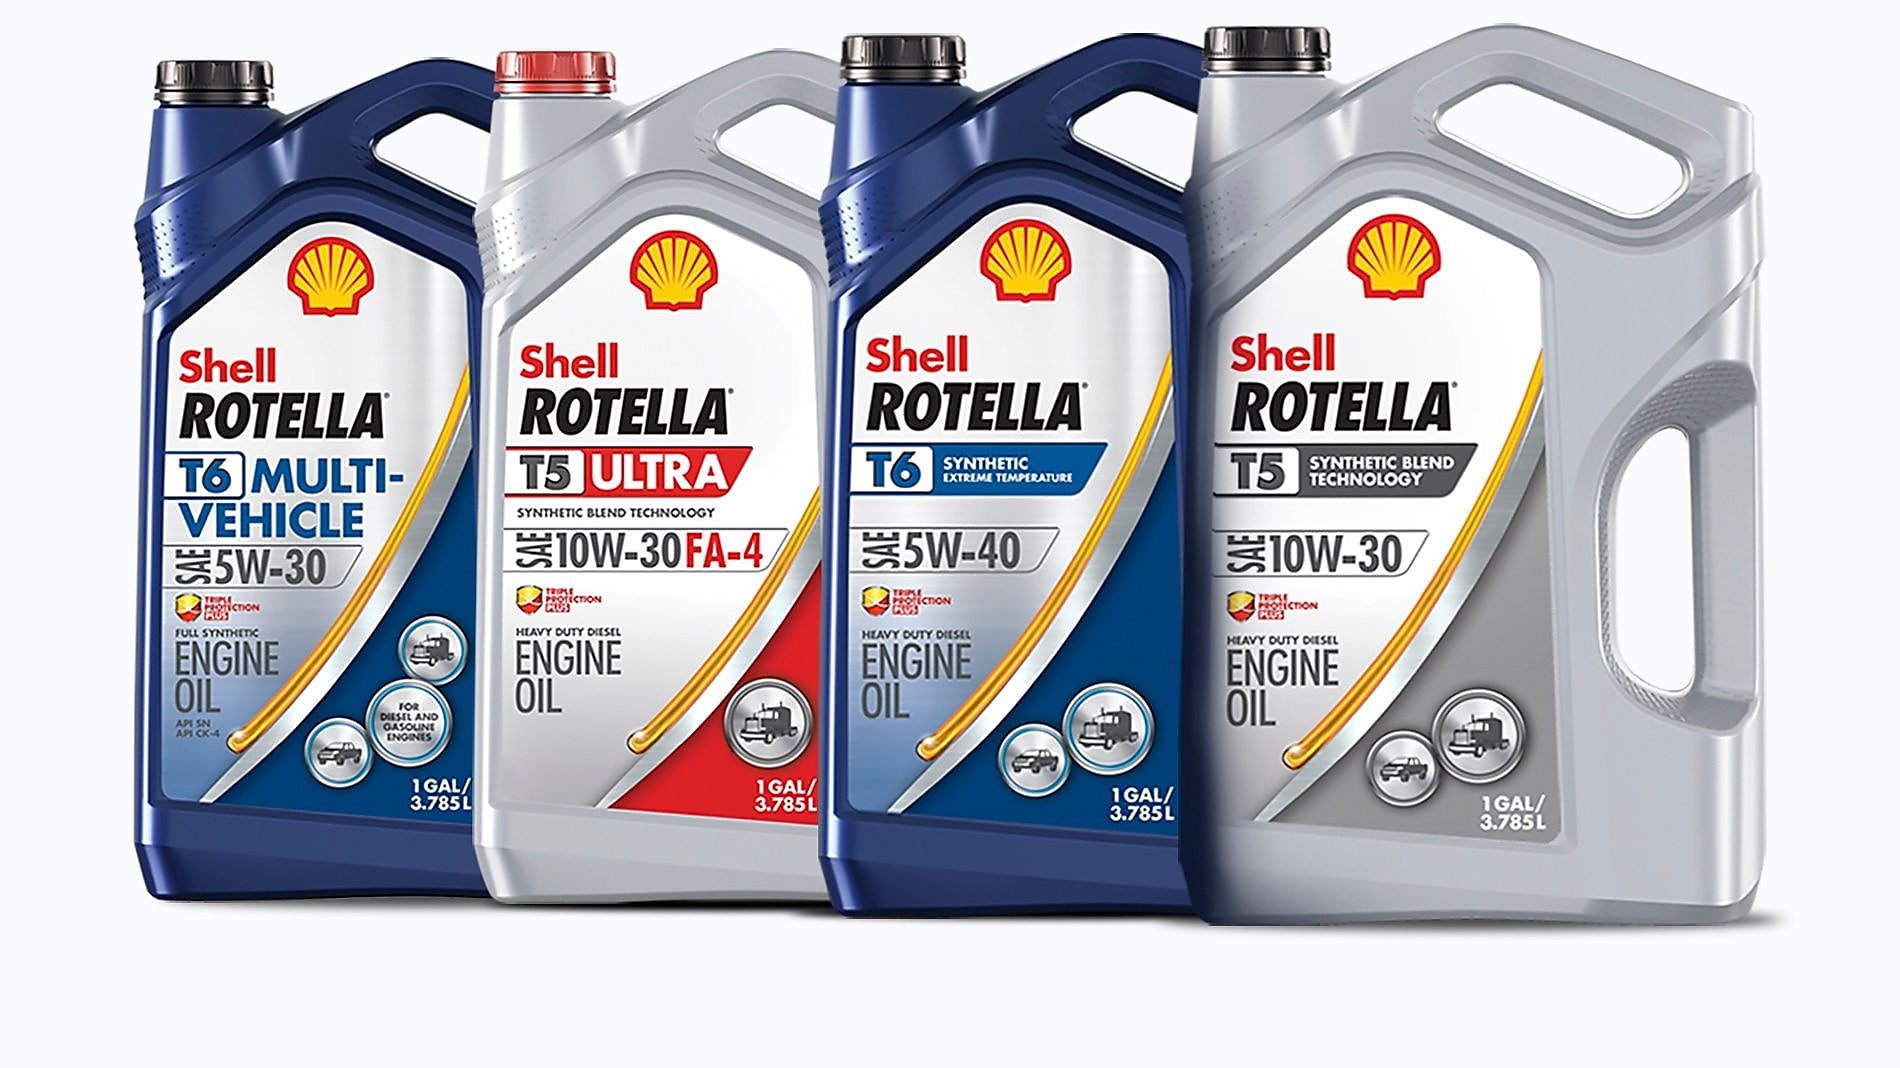 Shell Rotella T4 >> Full Synthetic and Synthetic Blend Oil Products | Shell ...